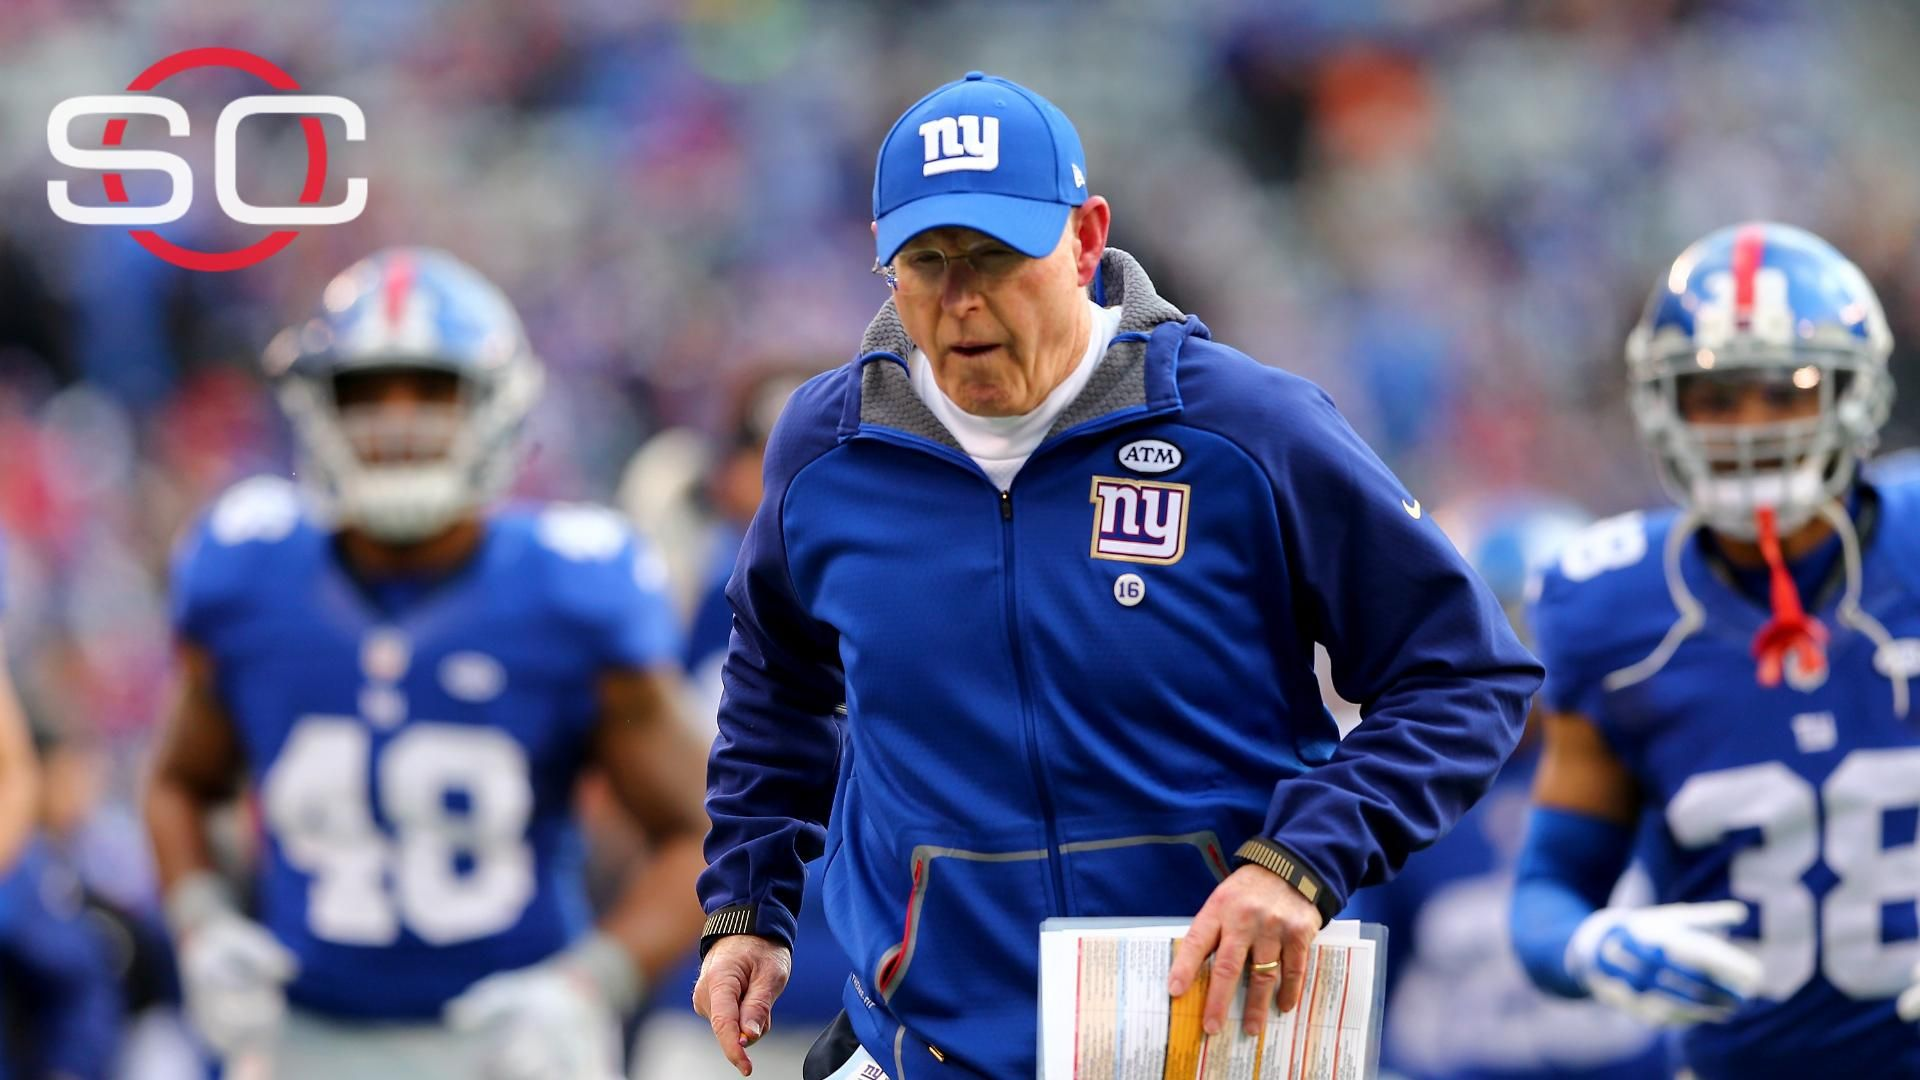 Eagles expected to interview Coughlin Monday